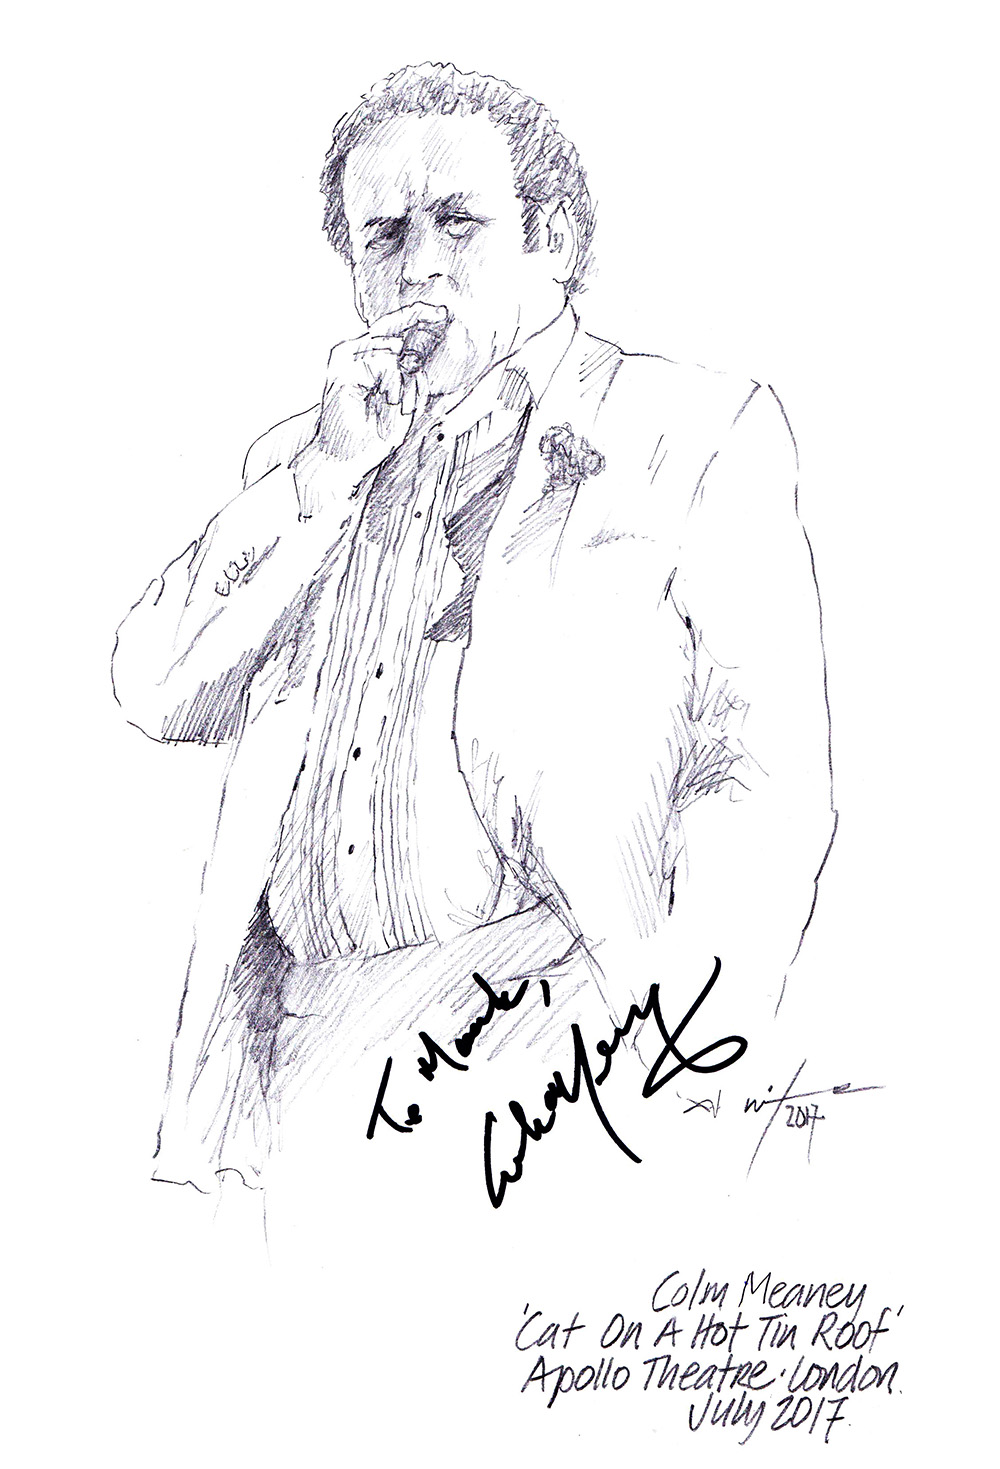 Drawing Colm Meaney In Cat On A Hot Tin Roof